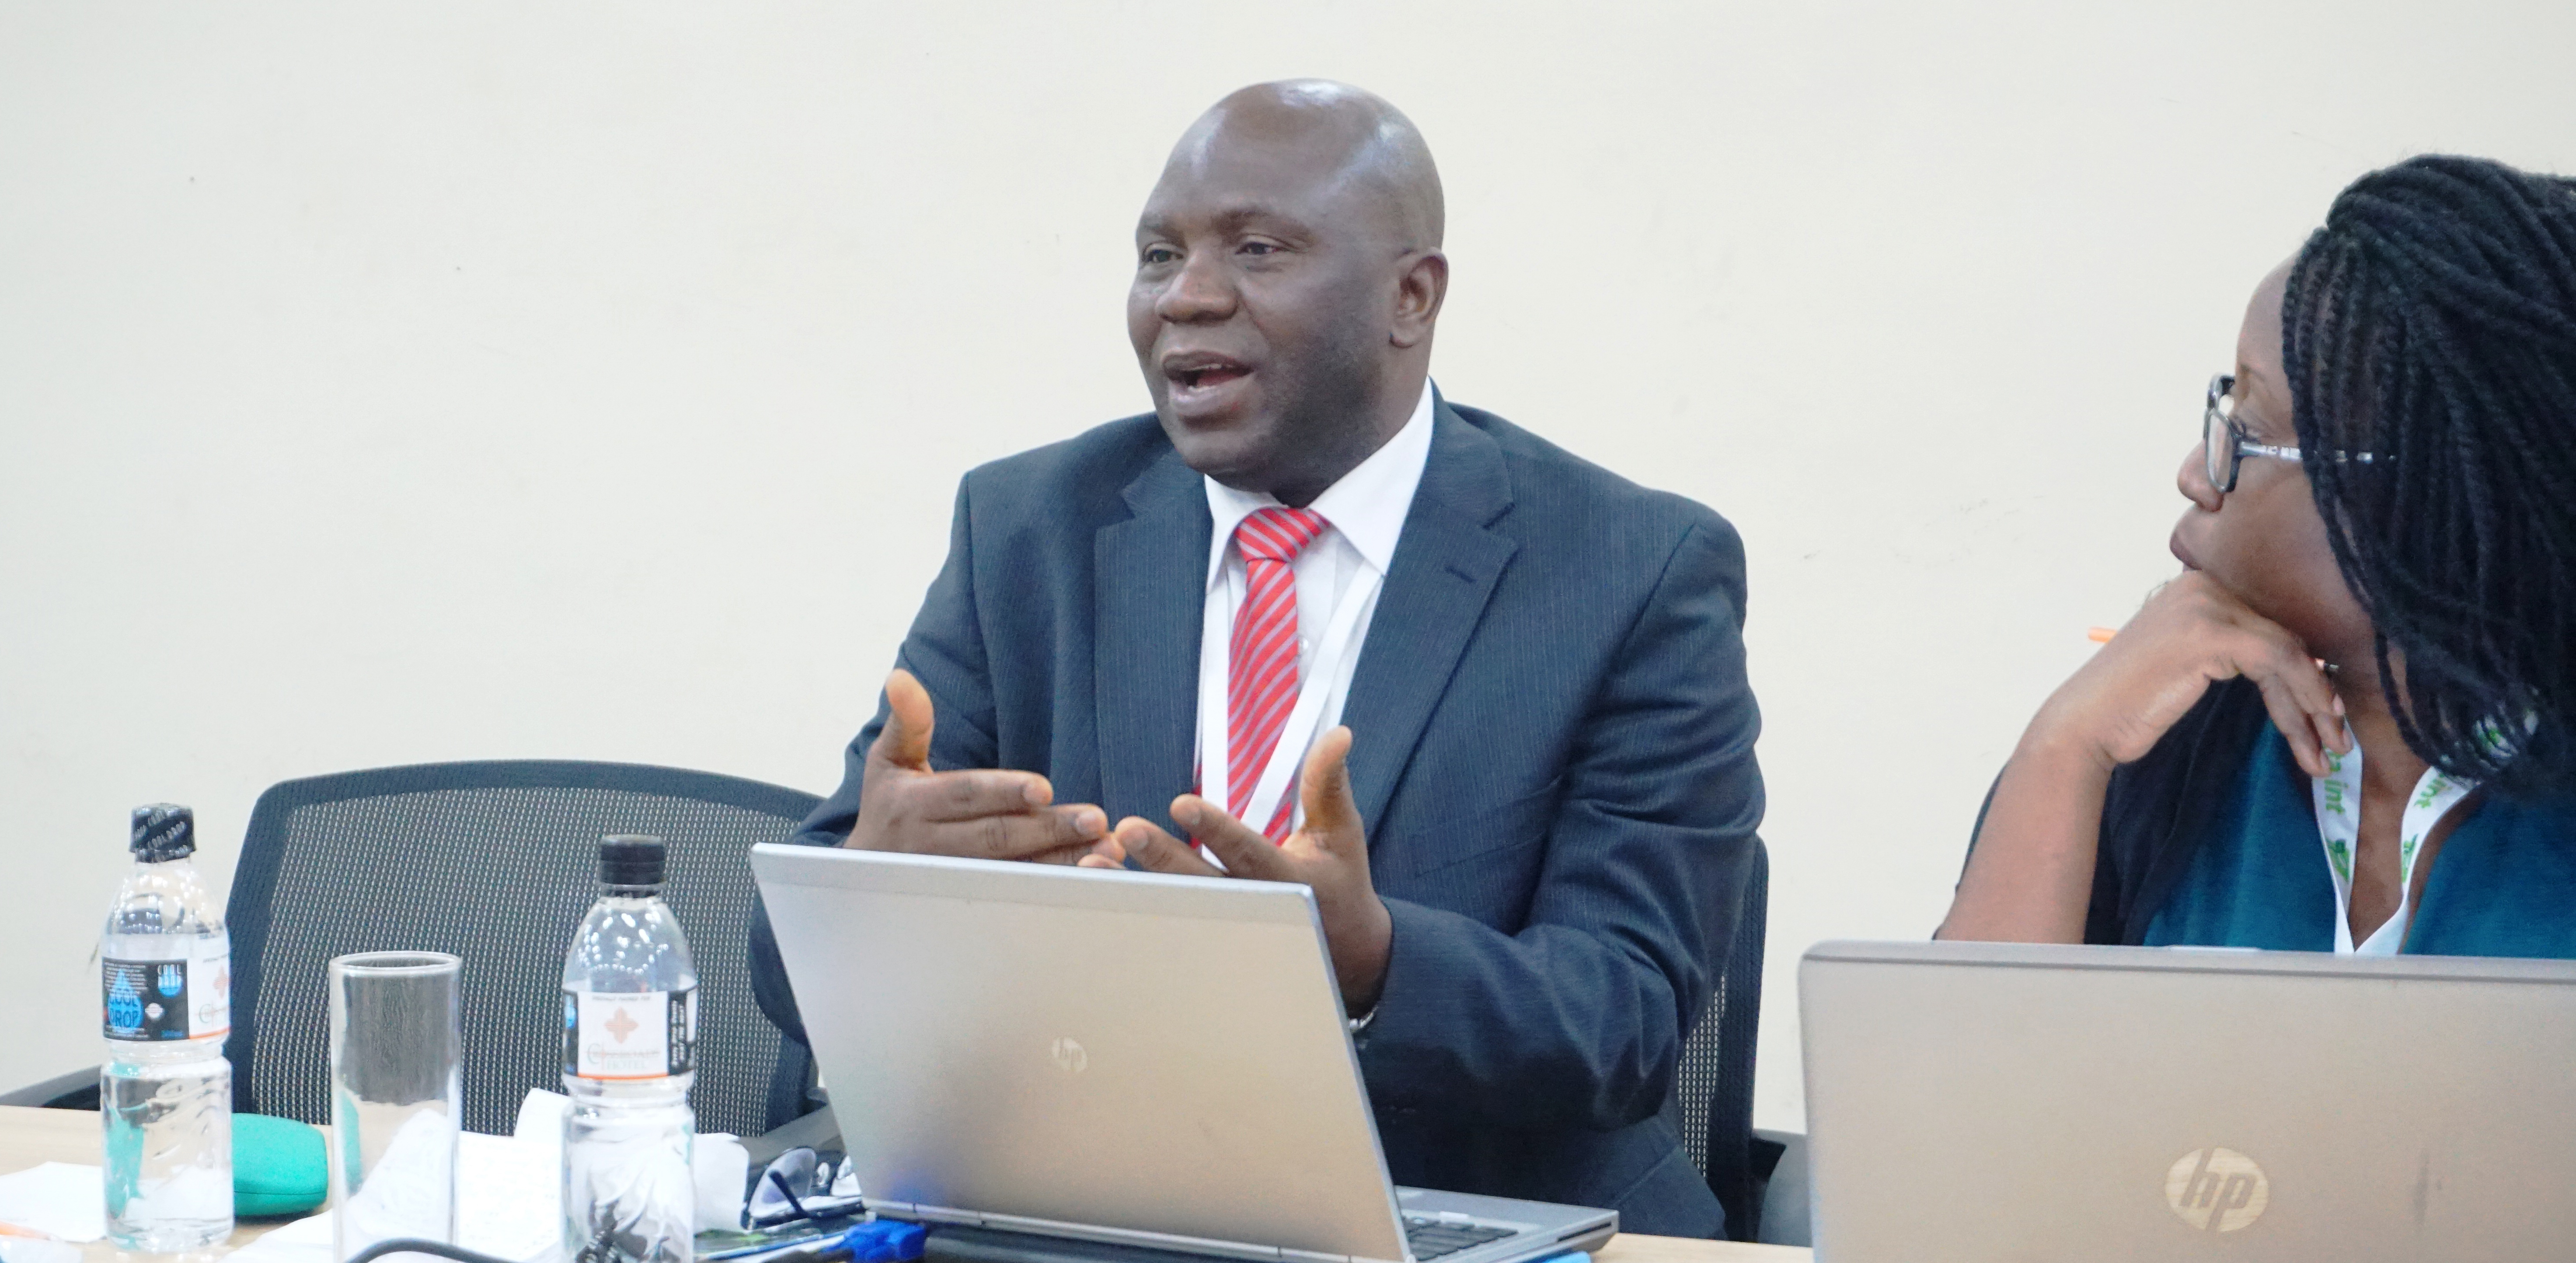 Olu Ajayi, CTA Senior Programmes Coordinator and Programme Lead, discusses implementing climate-smart solutions for farmers in Southern Africa